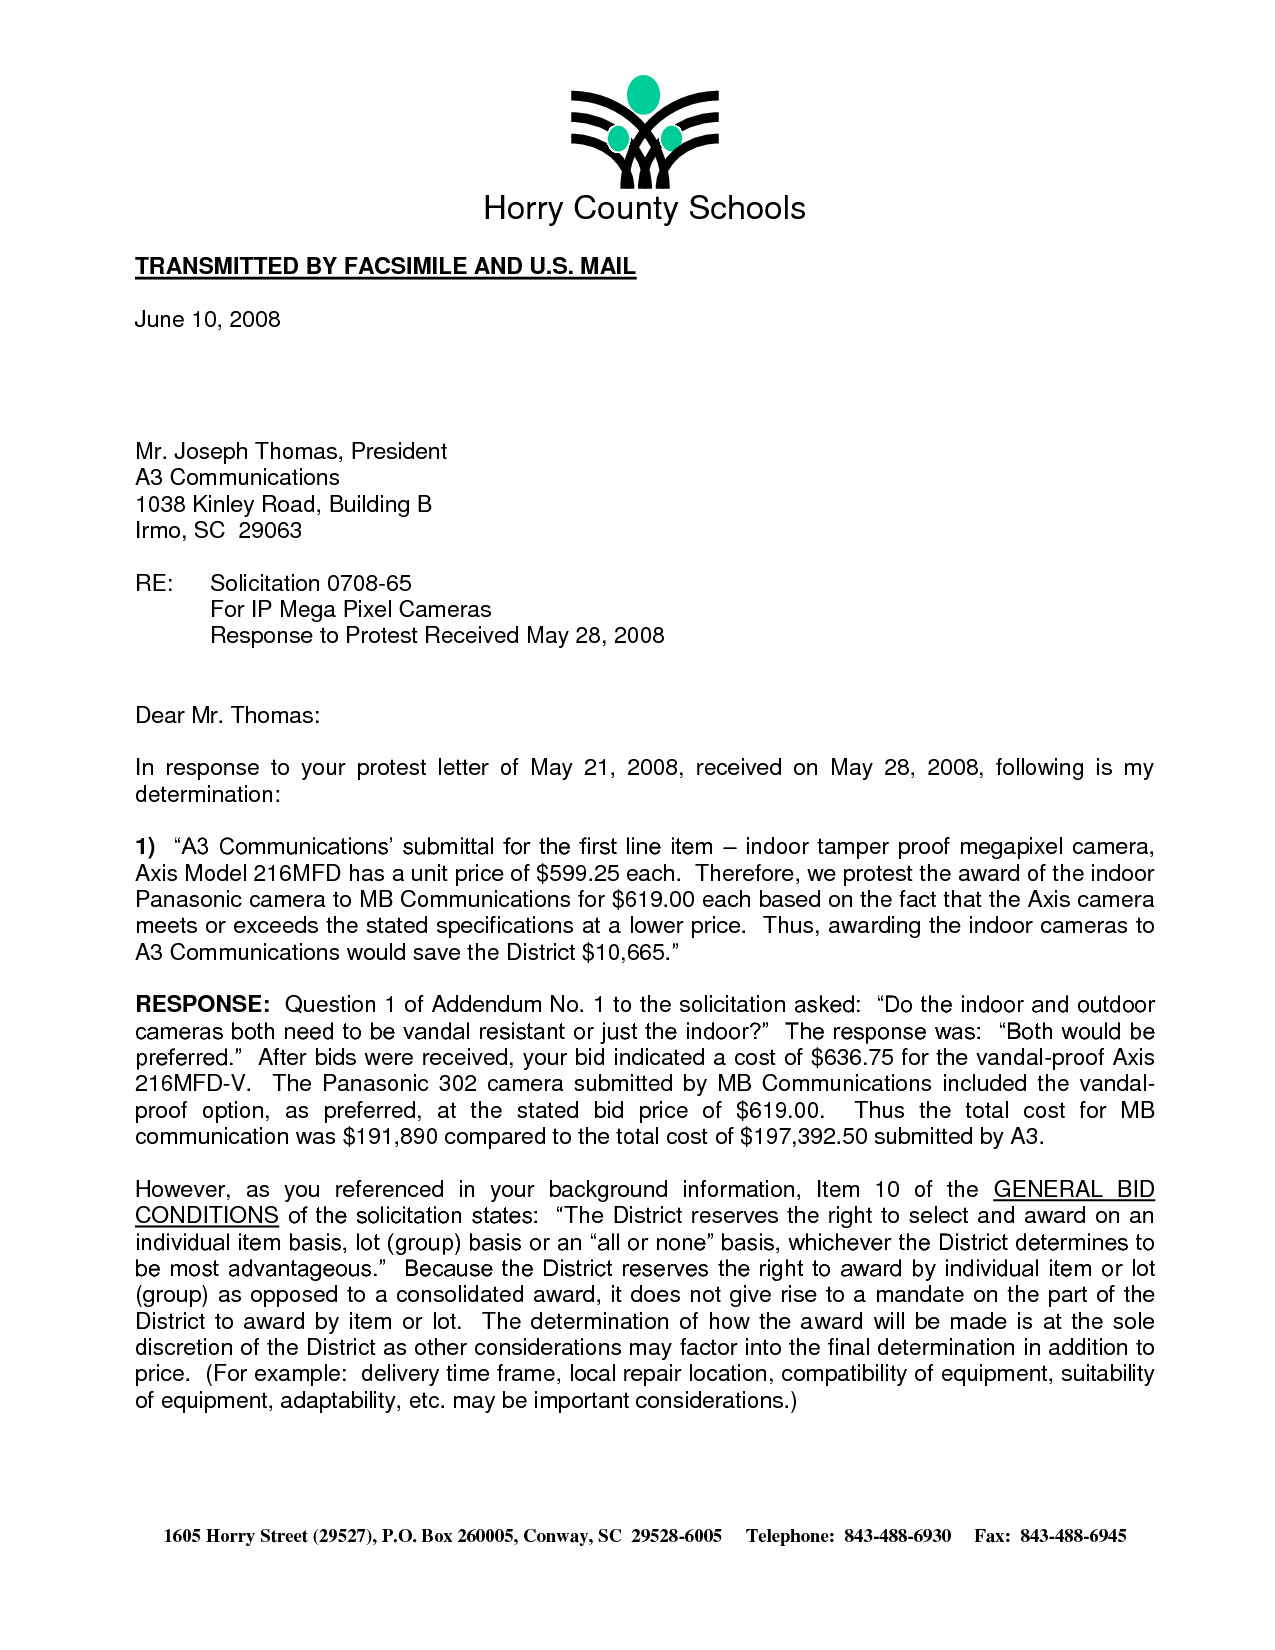 Cp2000 Response Letter Template - 40 Lovely Sample Response Letter to Irs Cp2000